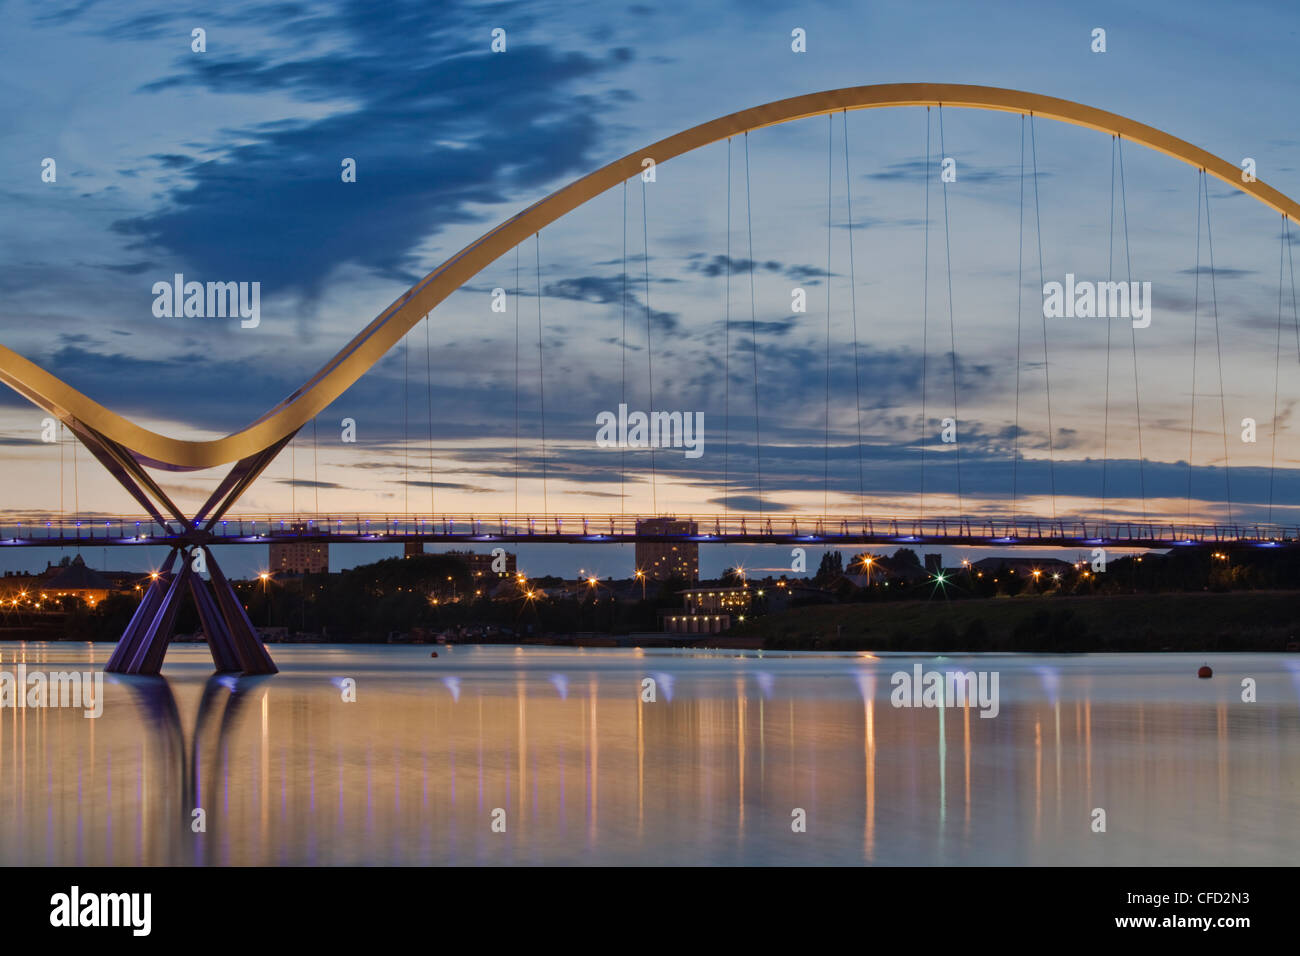 Infinity Bridge, built in 2009, over the River Tees, Stockton-on-Tees, County Durham, England, United Kingdom, Europe - Stock Image